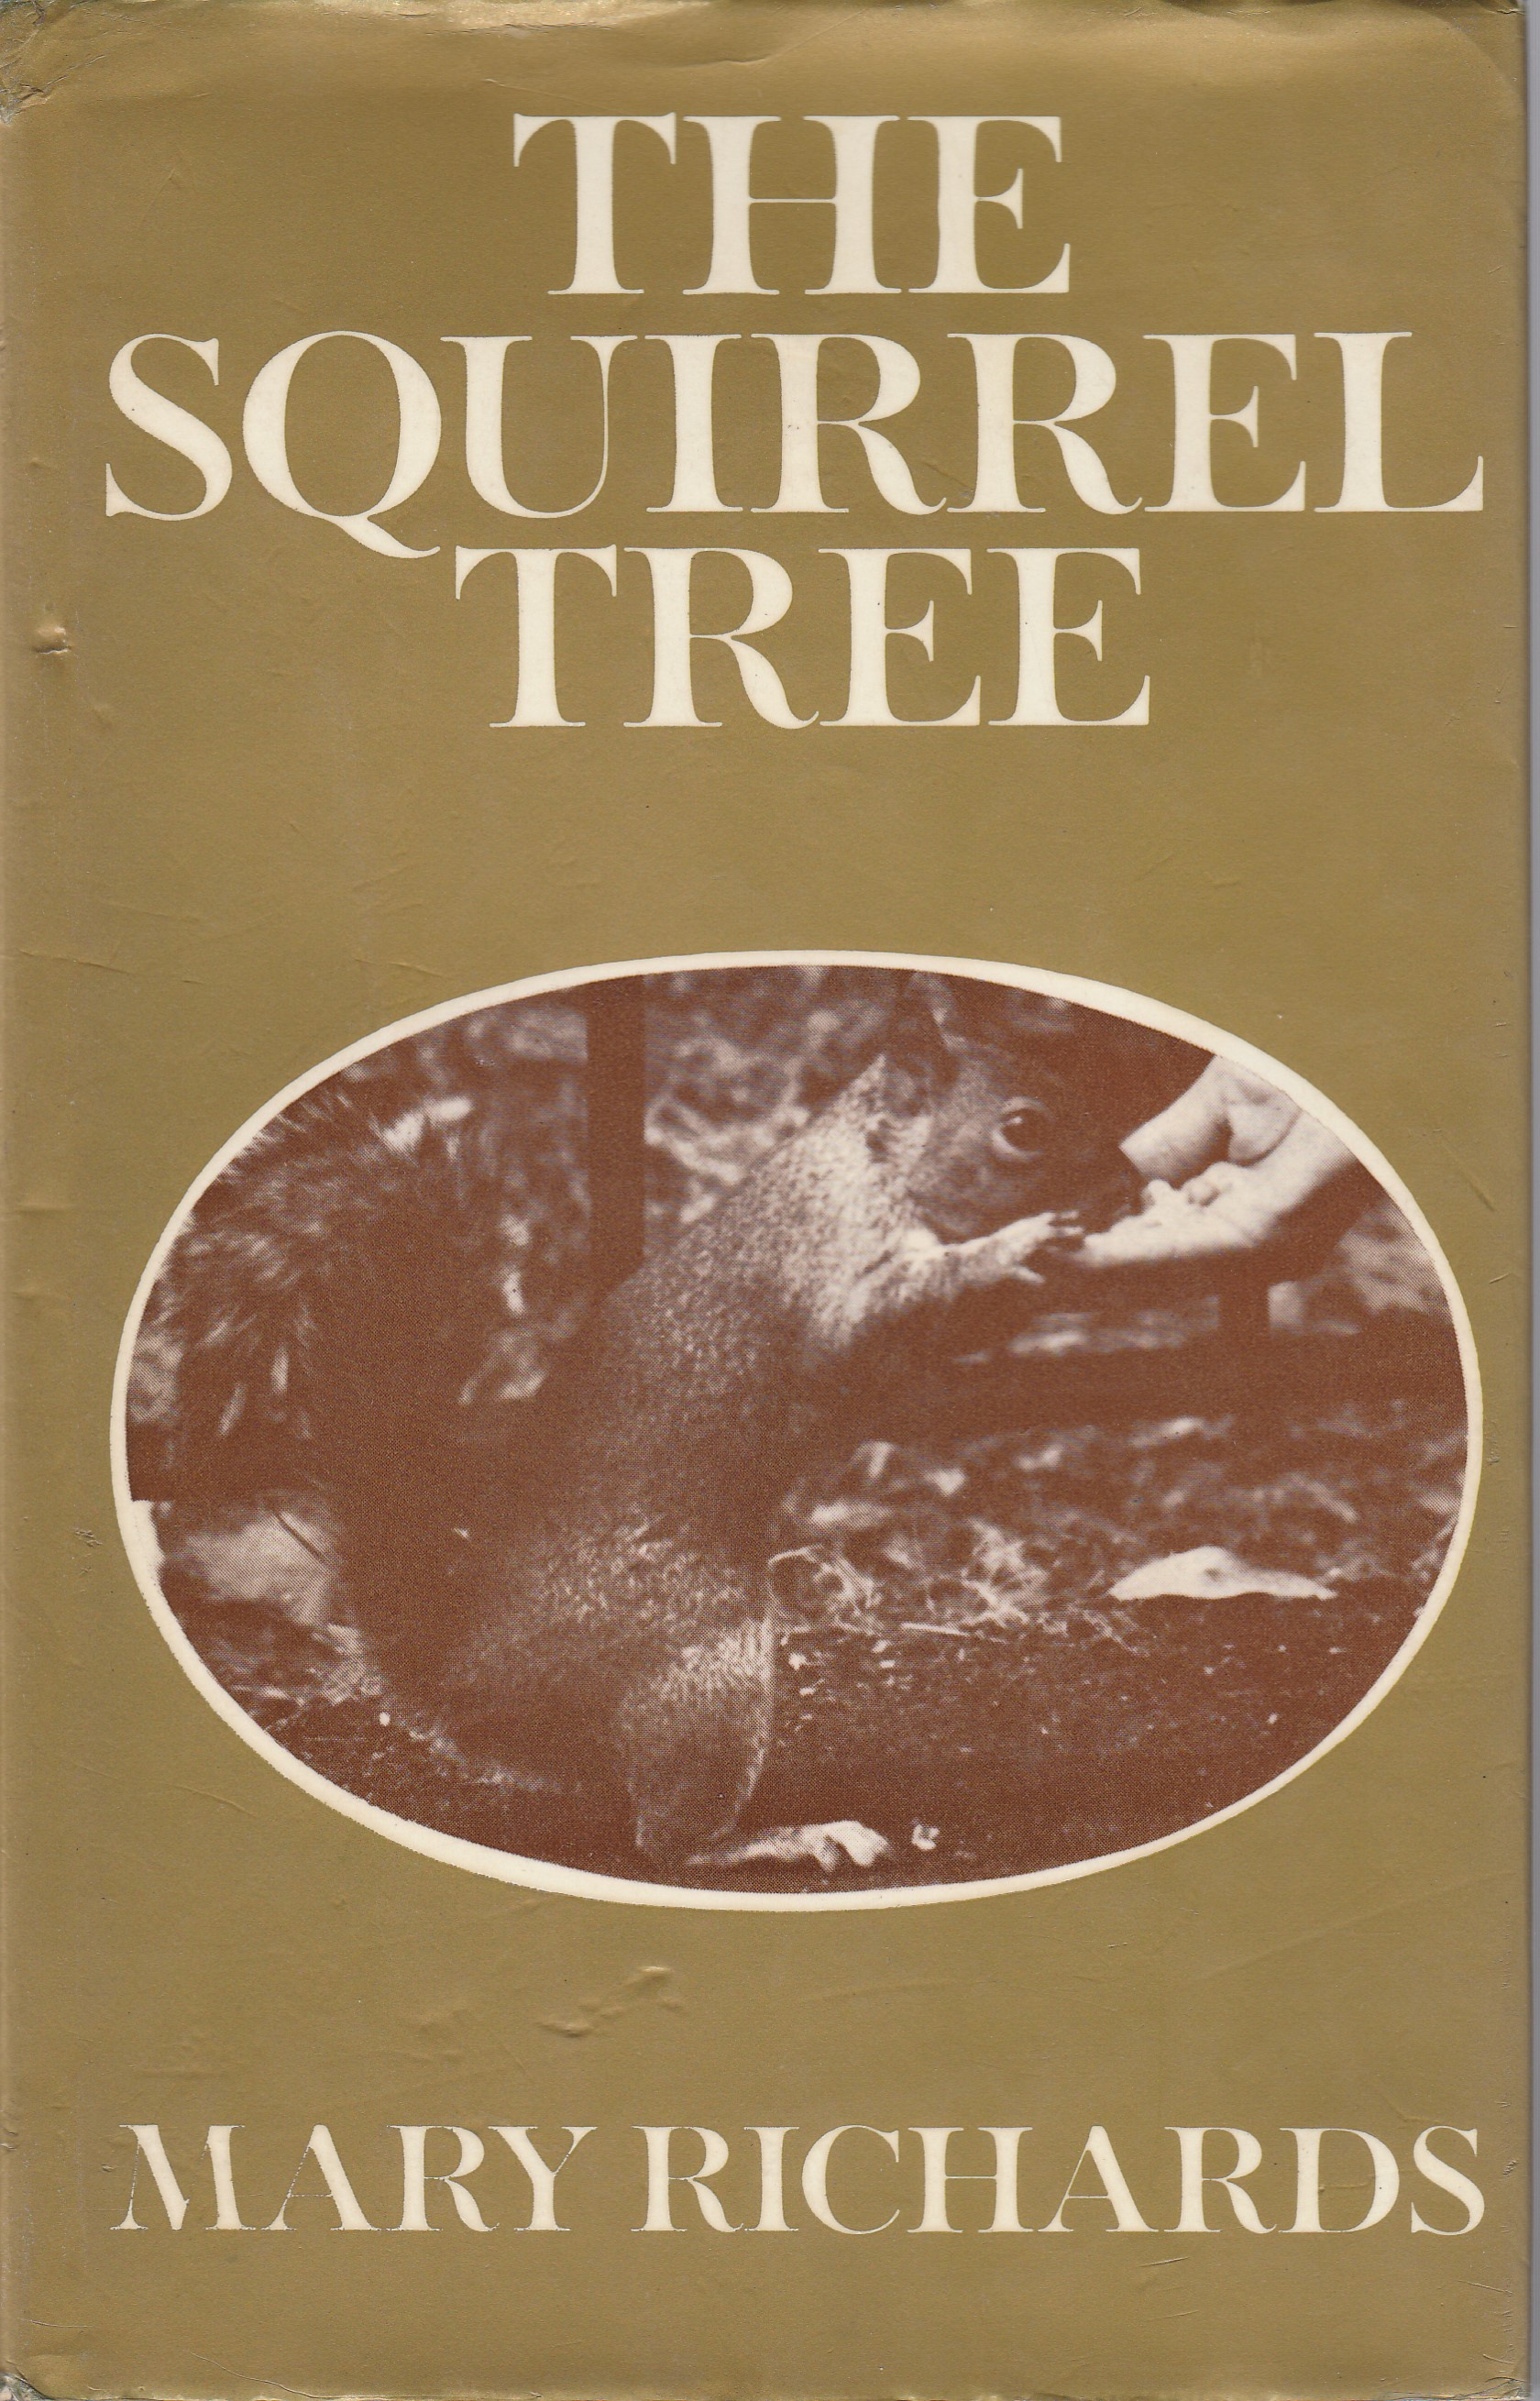 The Squirrel Tree